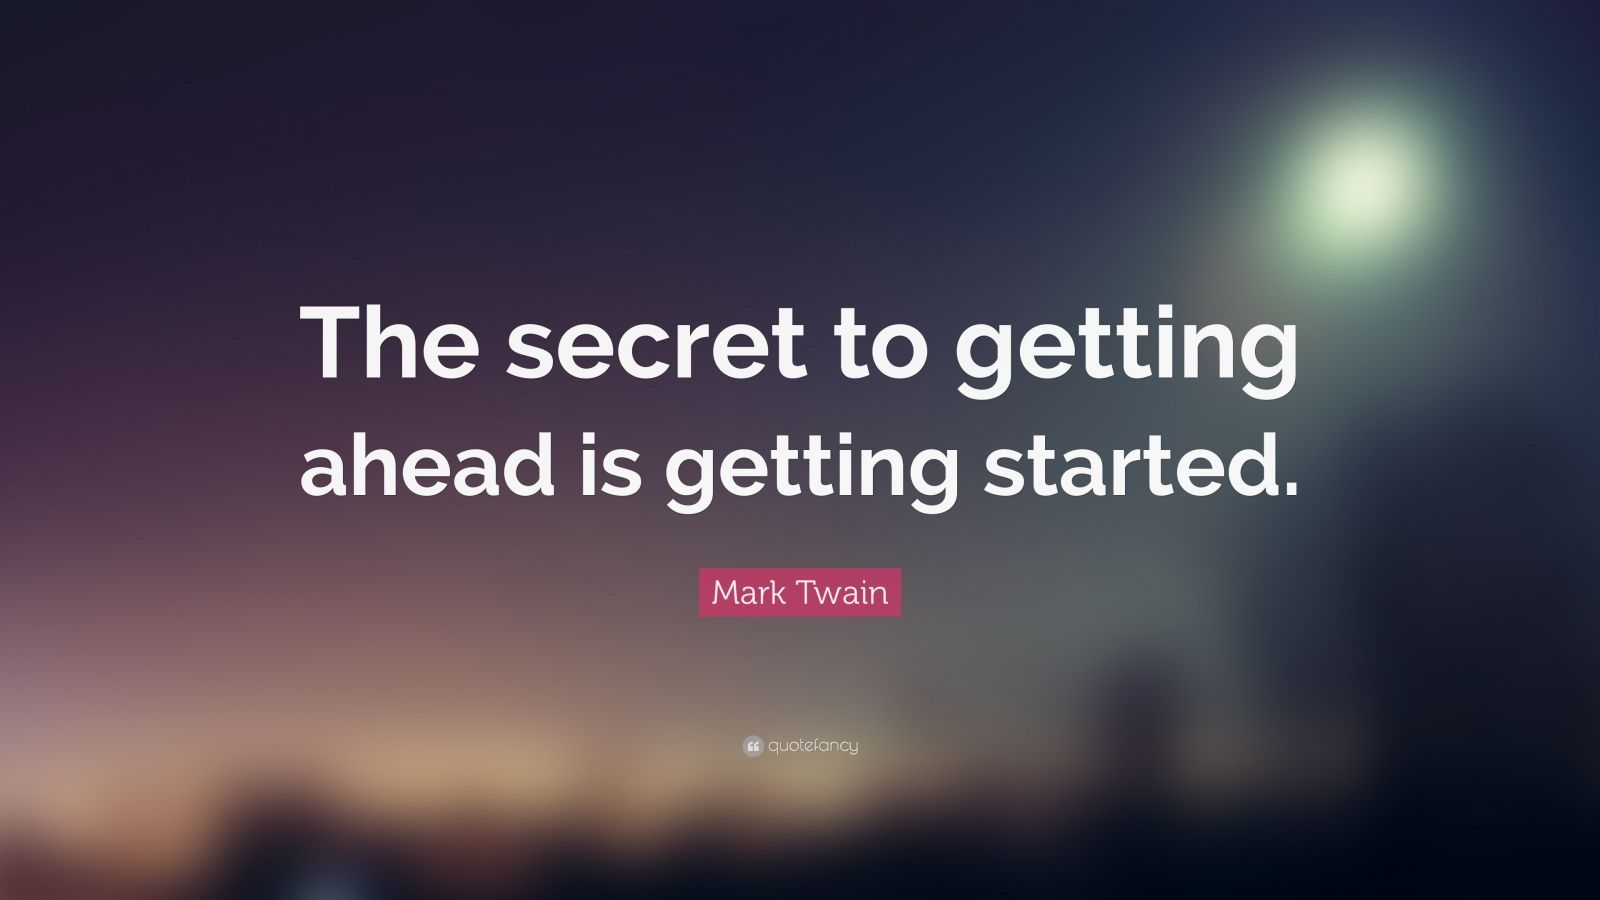 mark twain quote   u201cthe secret to getting ahead is getting